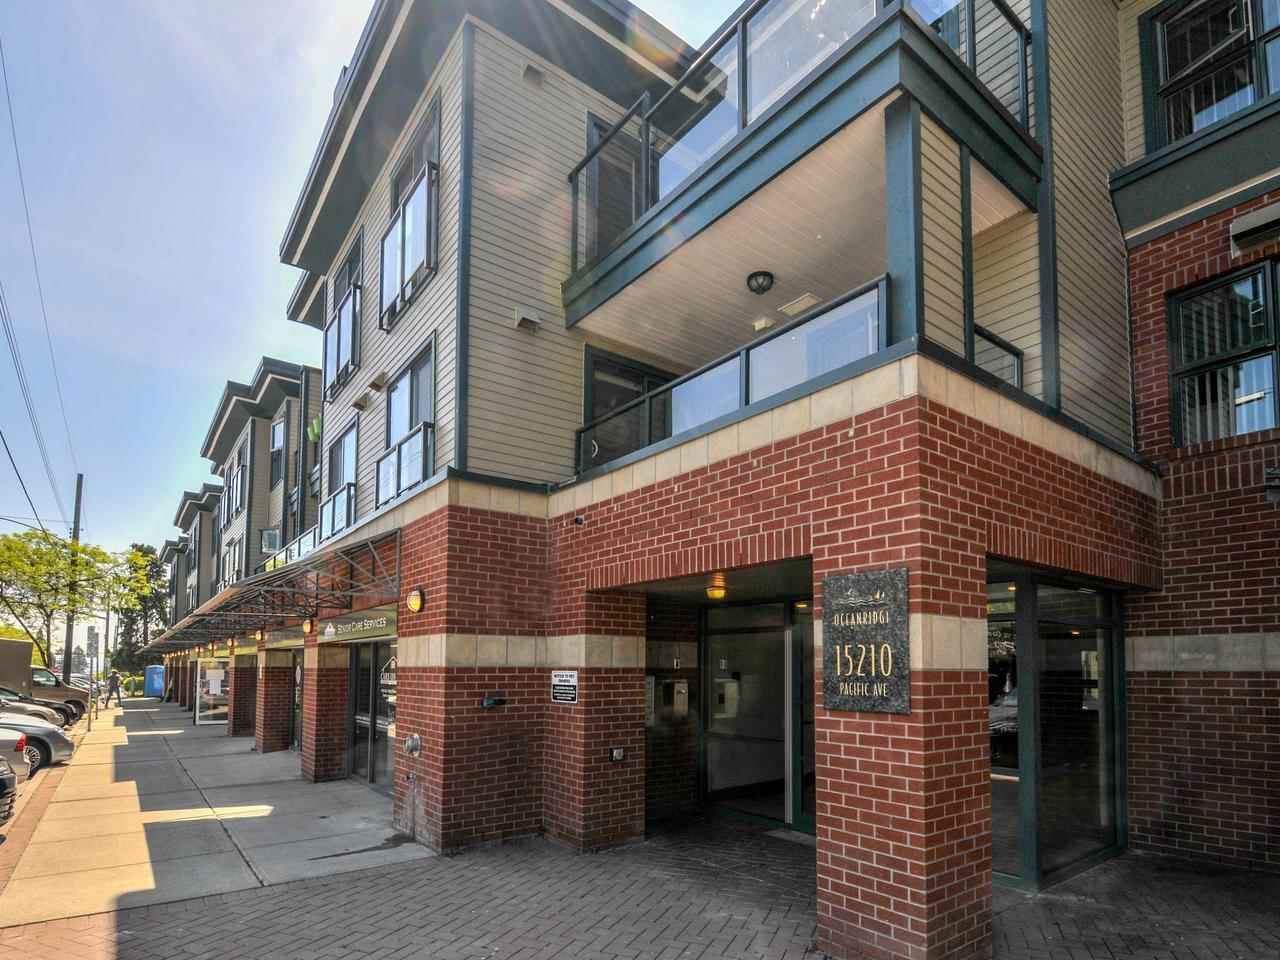 212 15210 PACIFIC AVENUE, 2 bed, 2 bath, at $729,900